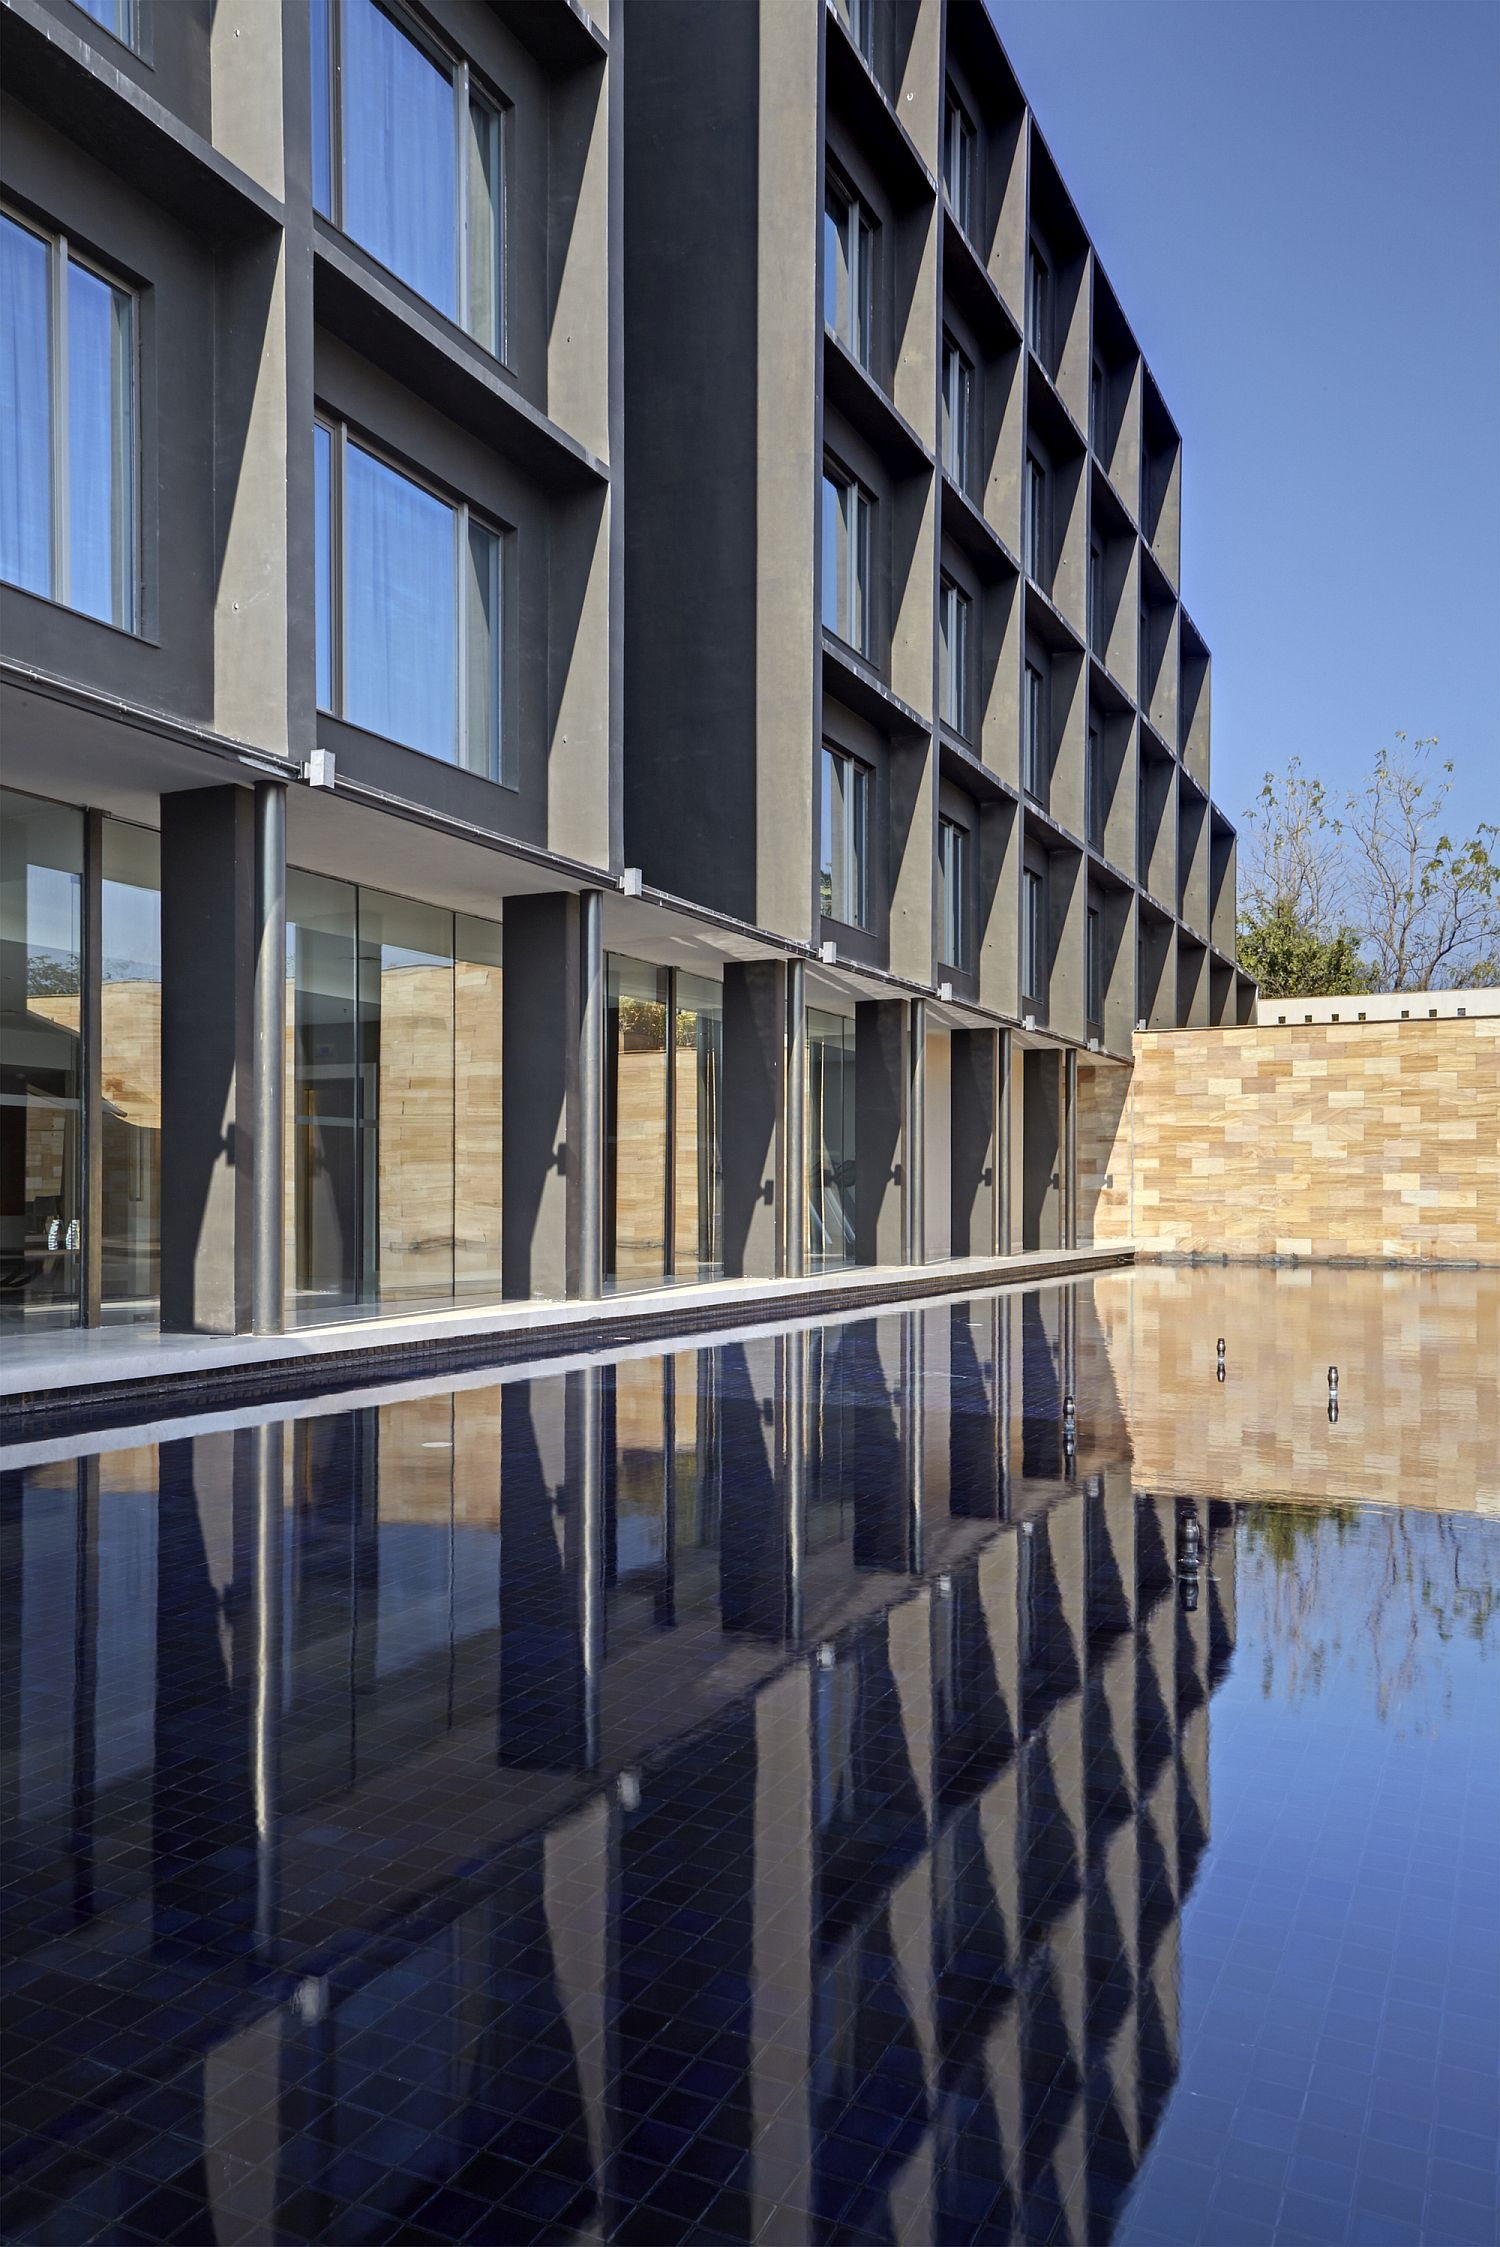 Water-reflects-the-main-structure-of-the-hotel